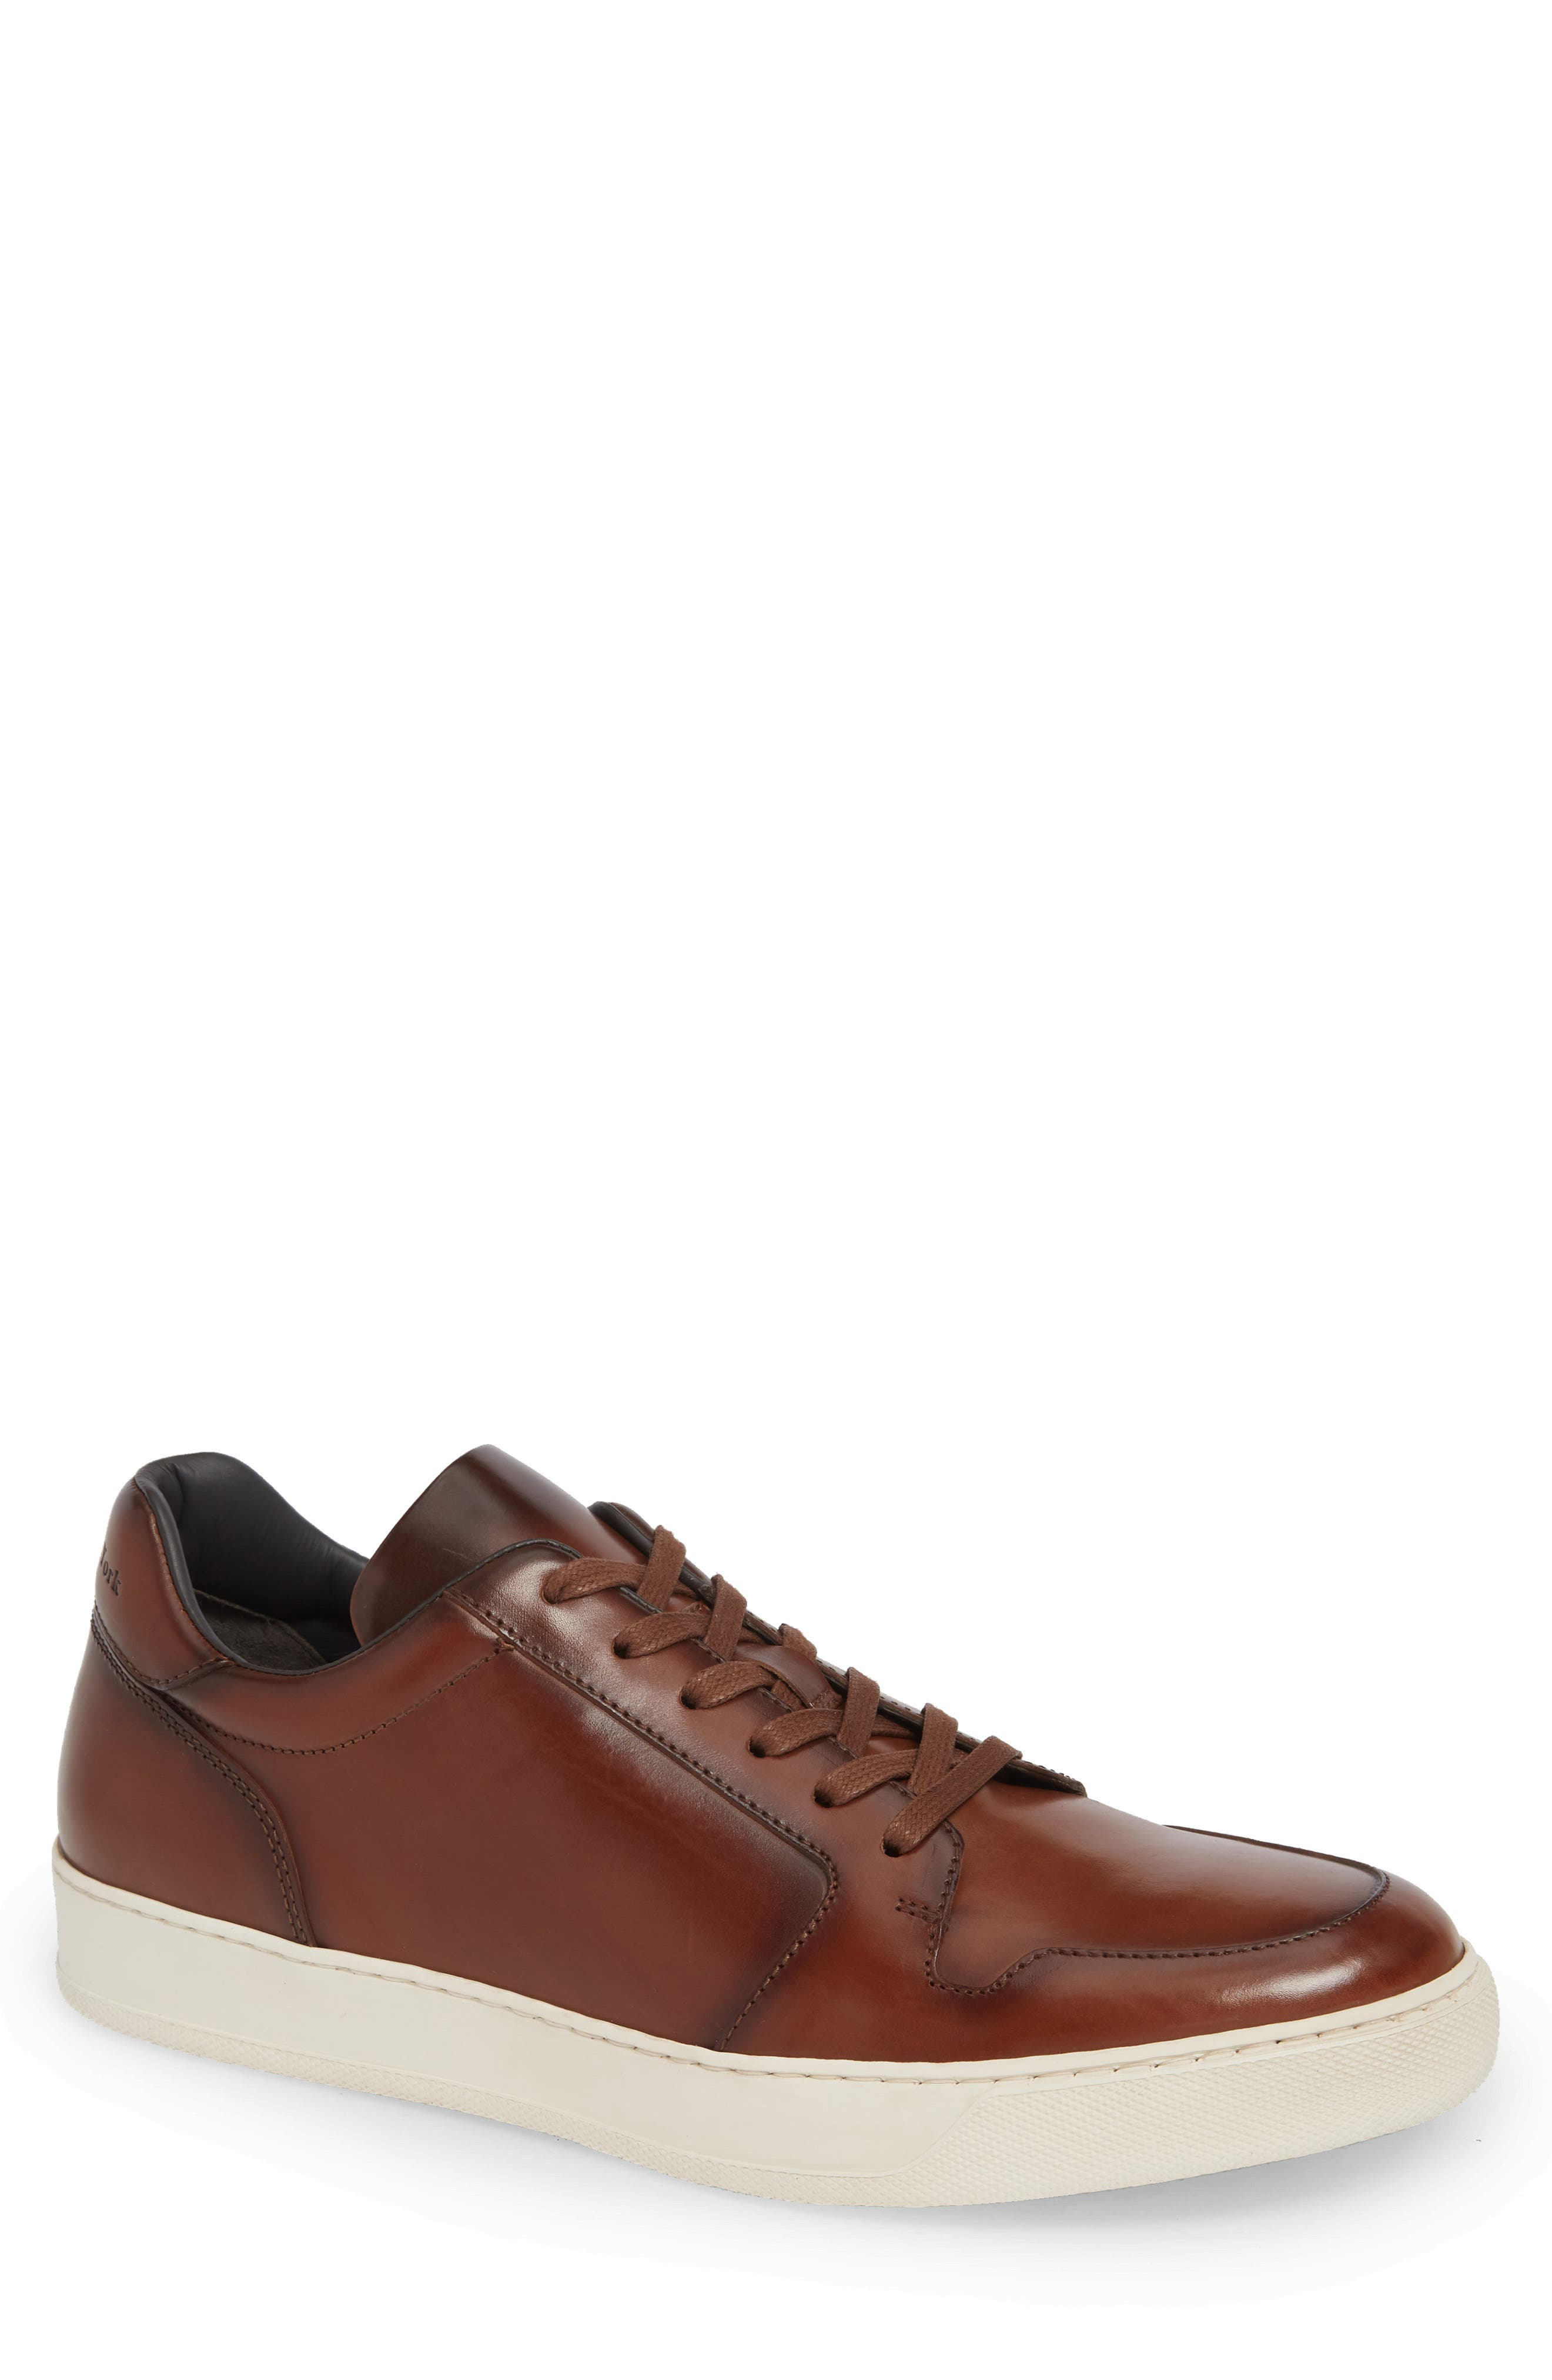 Munich Sneaker,                             Main thumbnail 1, color,                             MARRONE LEATHER